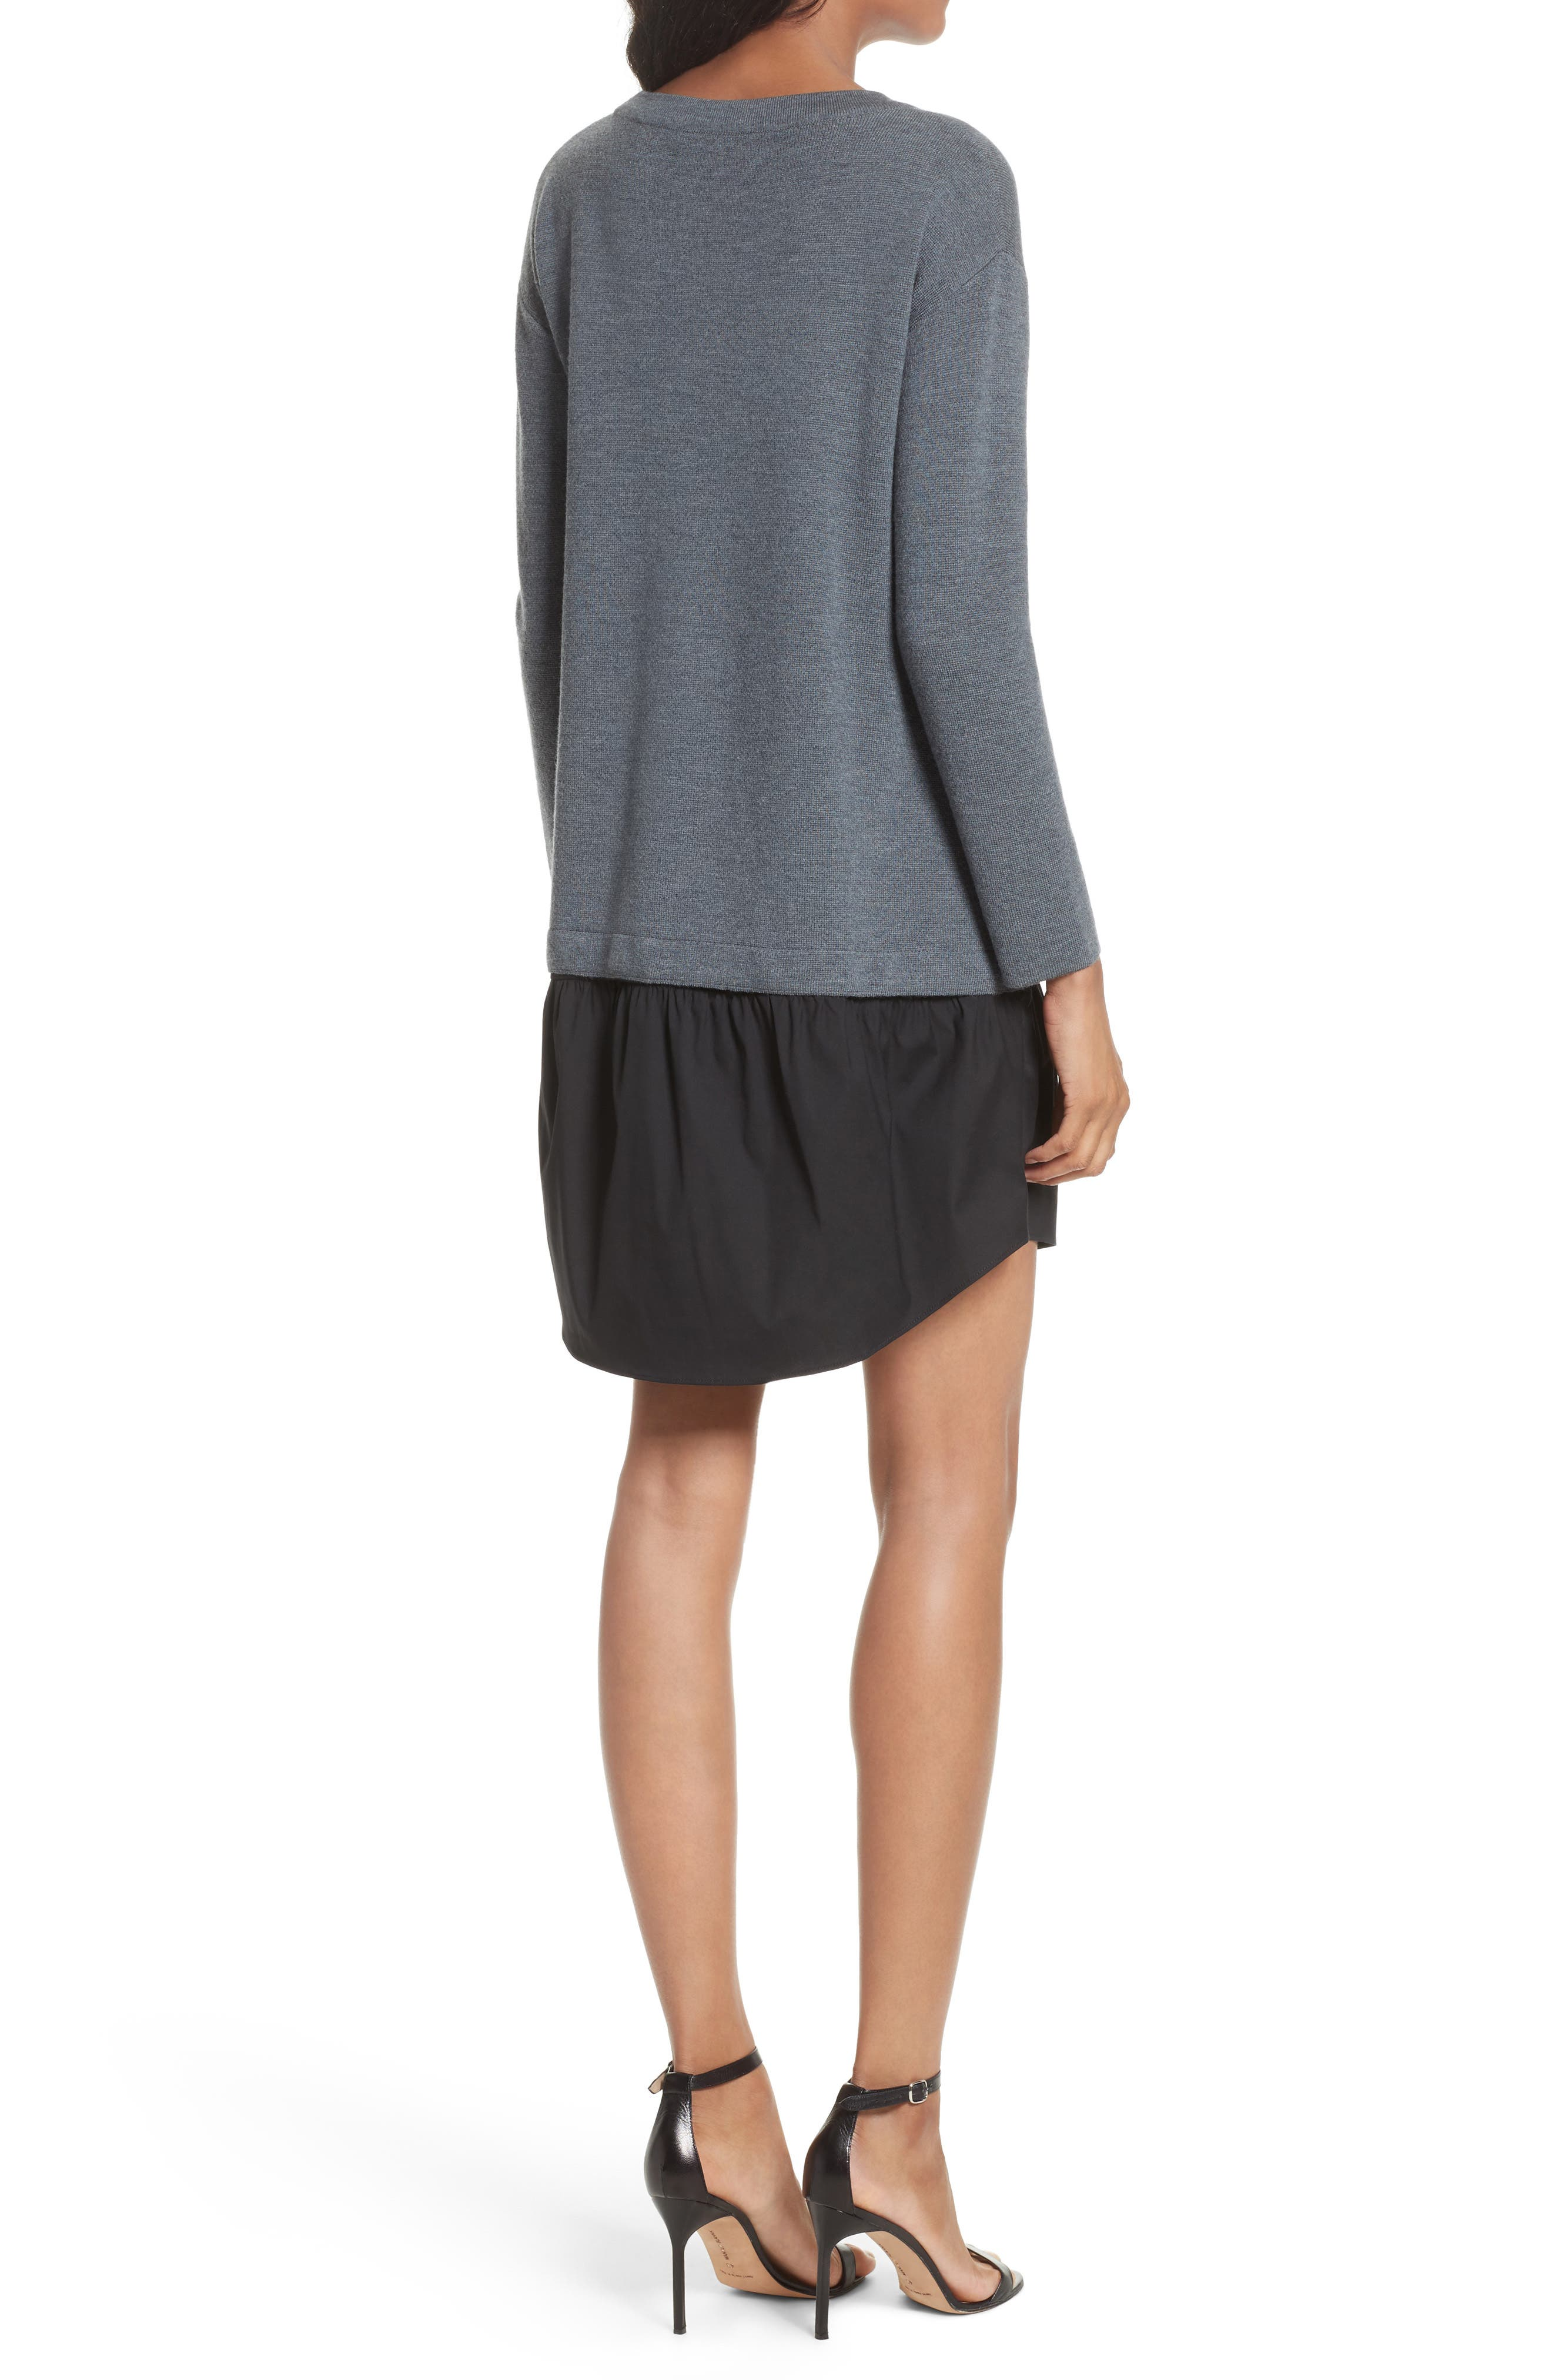 2-in-1 Sweater Dress,                             Alternate thumbnail 2, color,